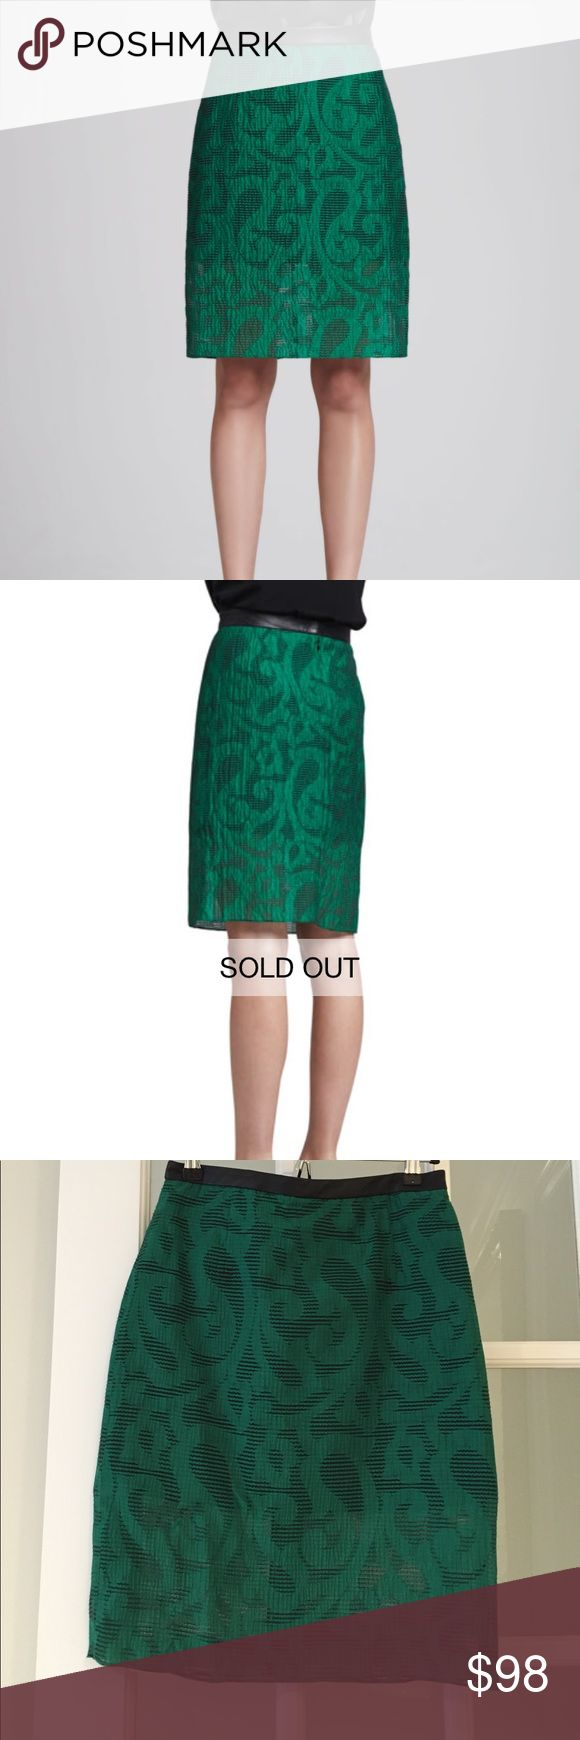 NWOT Tibi damask green pencil skirt Tibi Damask Jacquard Pencil Skirt. never worn. beautiful green. picture doesn't do justice. The skirt looks exactly like the model pic when on. make an offer! Tibi Skirts Pencil